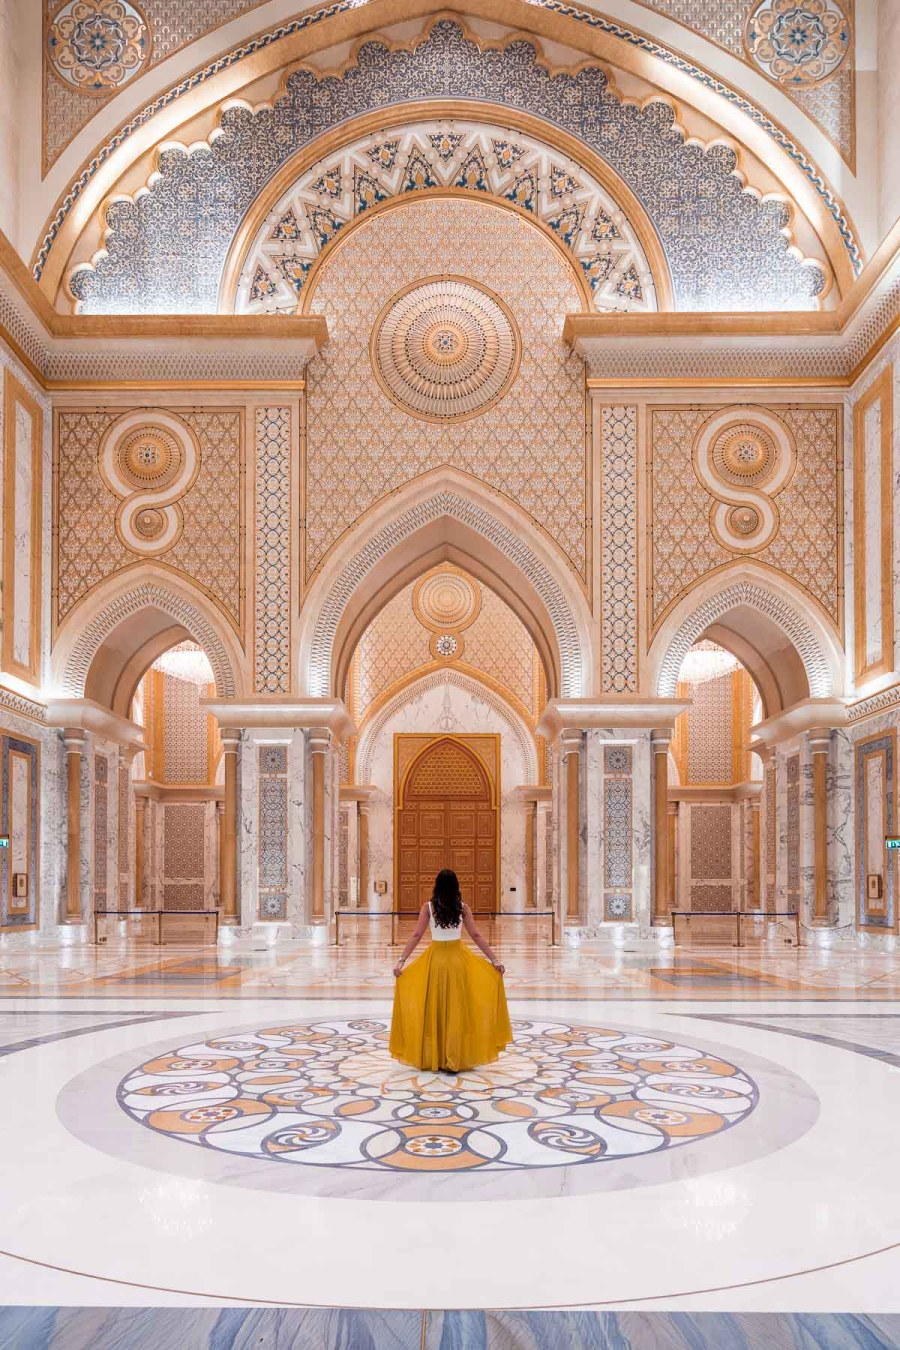 Girl in a yellow skirt standing in the middle of Qasr al Watan Palace, Abu Dhabi